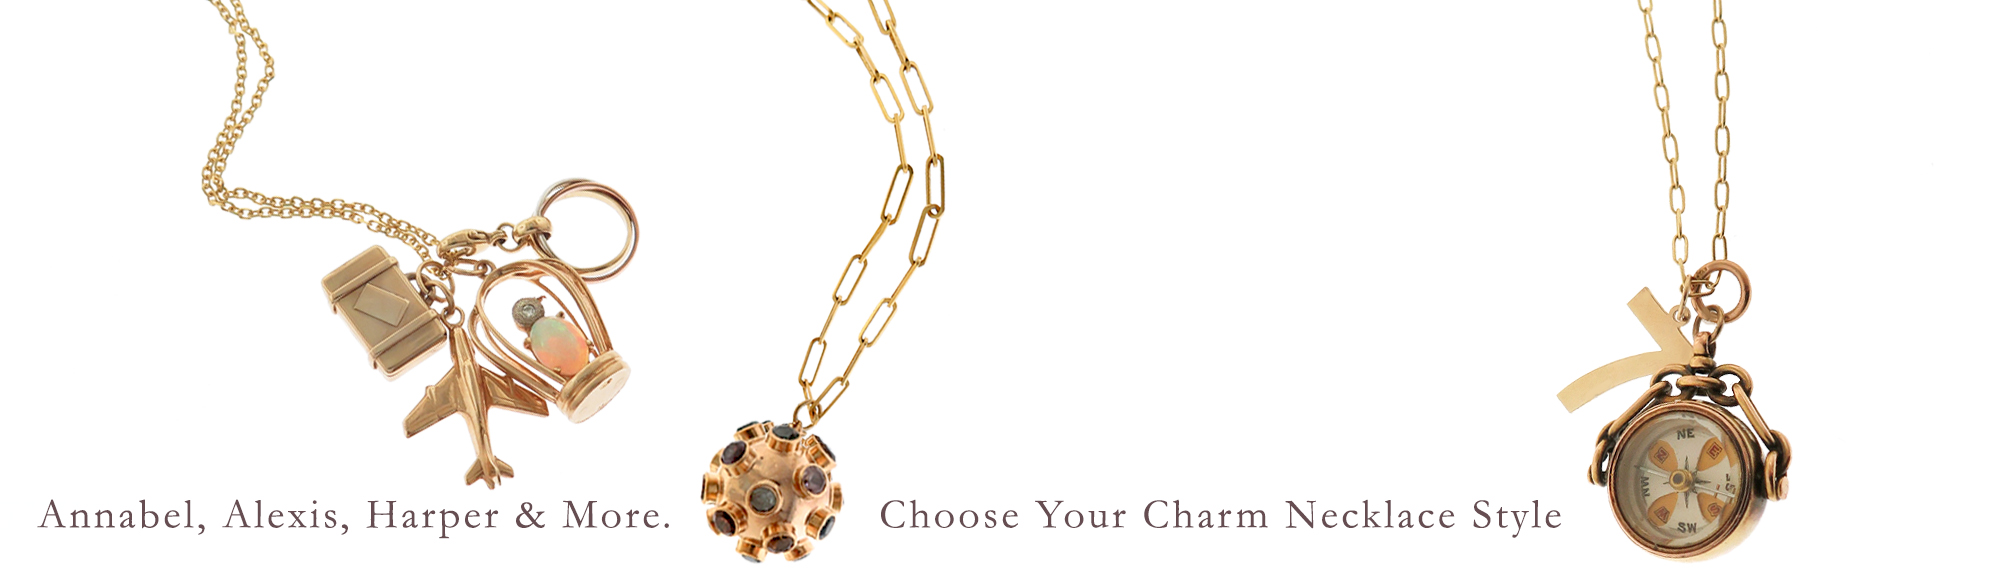 charmnecklacesyourstylebanner-new.jpg